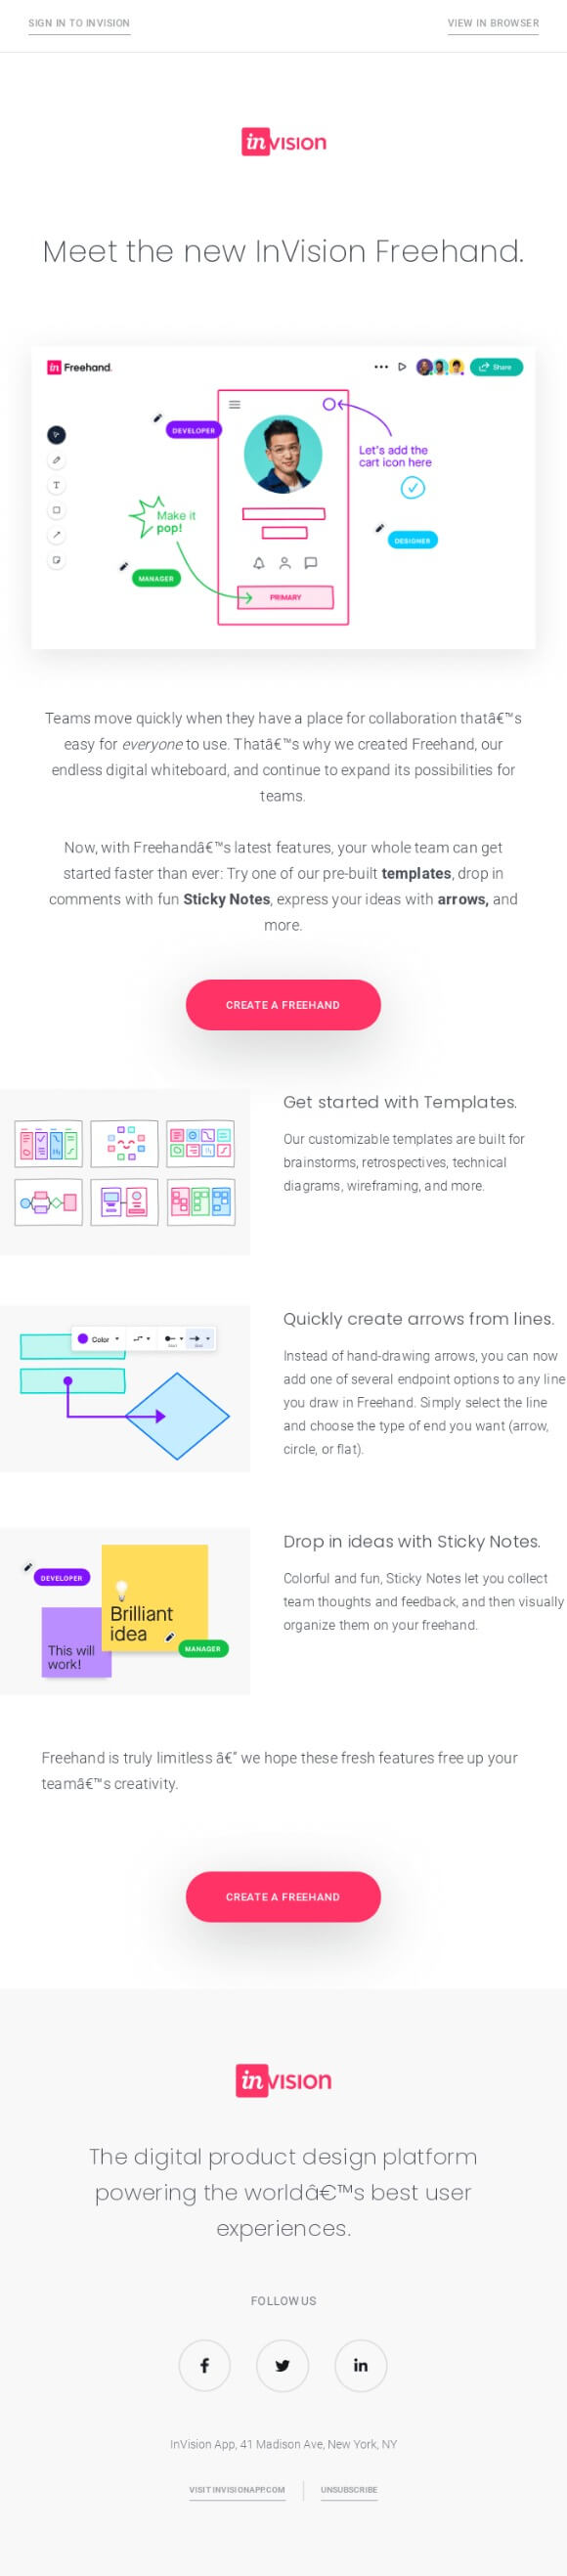 product-update-emails-invision